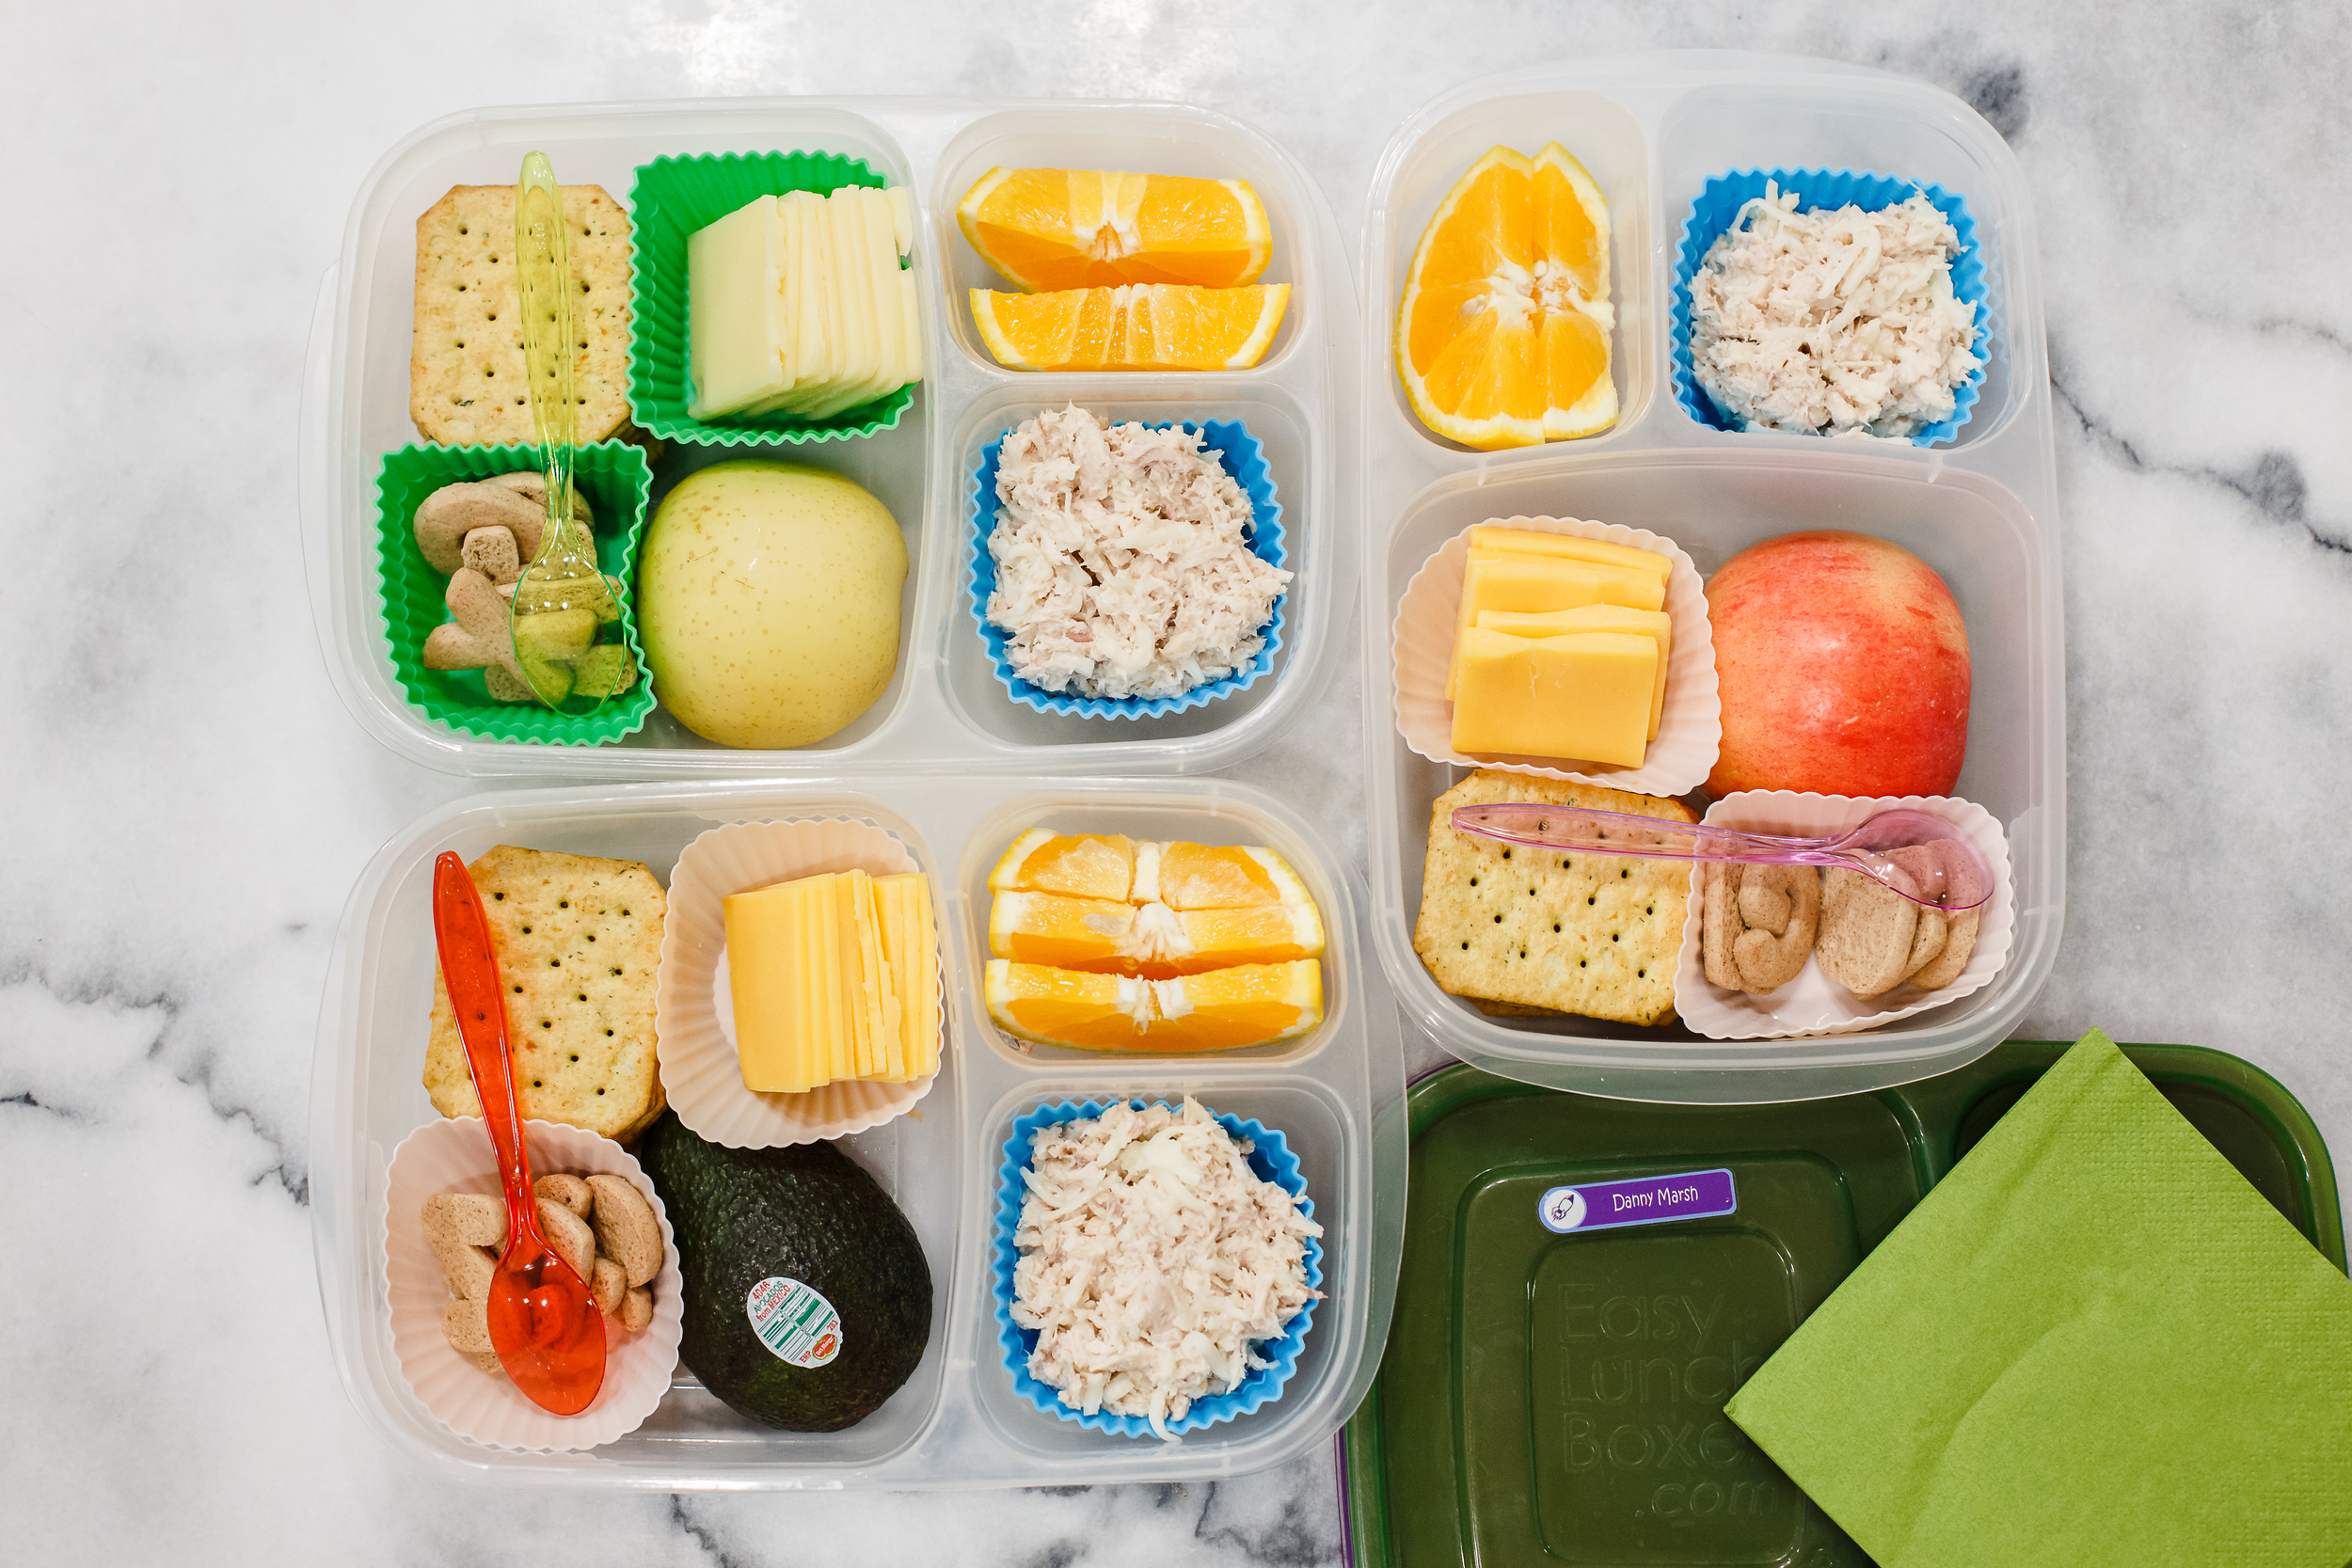 Thursday, lunches just for three: tuna salad, crackers, cheese, oranges and letter cookies. And one has half an apple, one has half an avocado, one has half a pear.